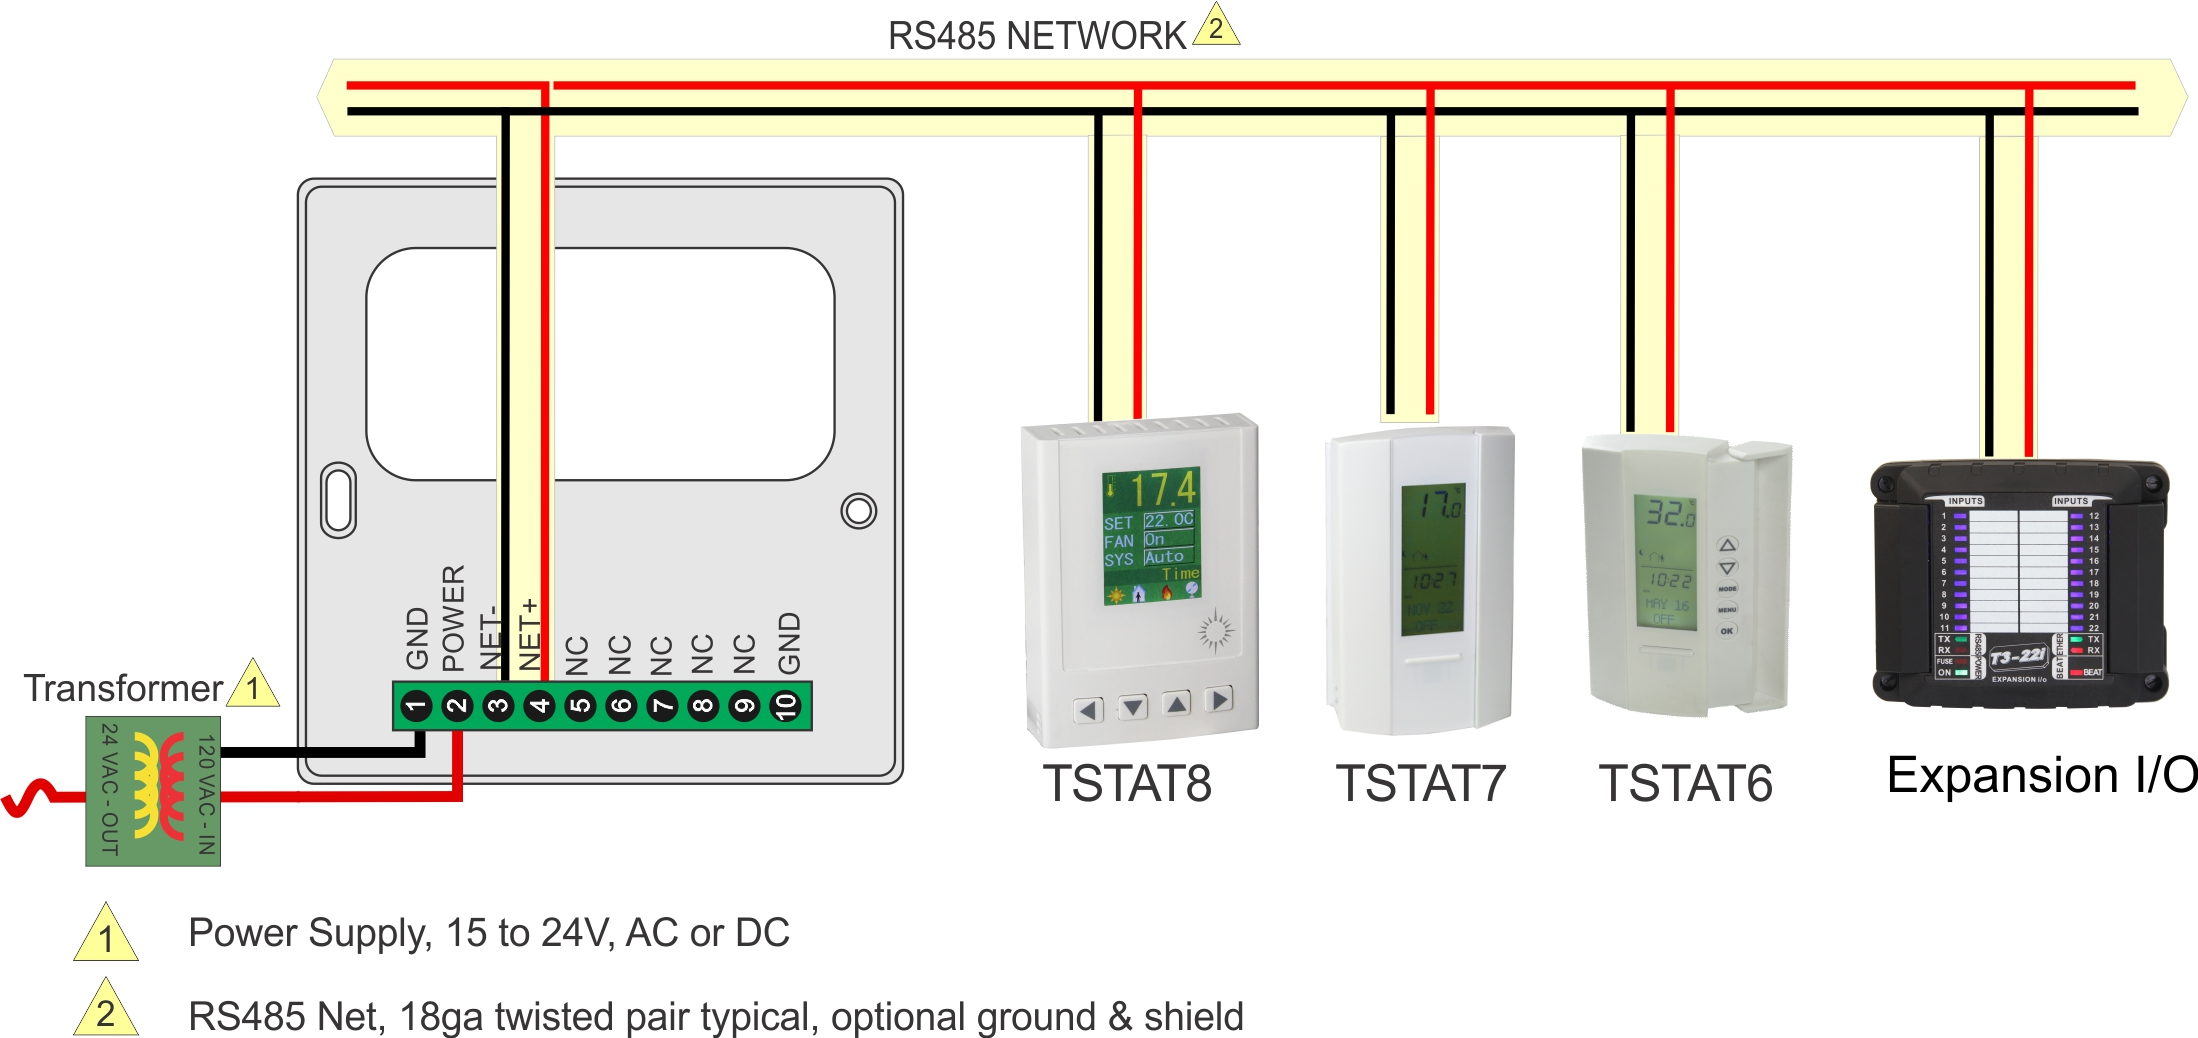 Bacnet Room Setpoint Temp Display Bravo Controls Ms Tp Wiring Diagram